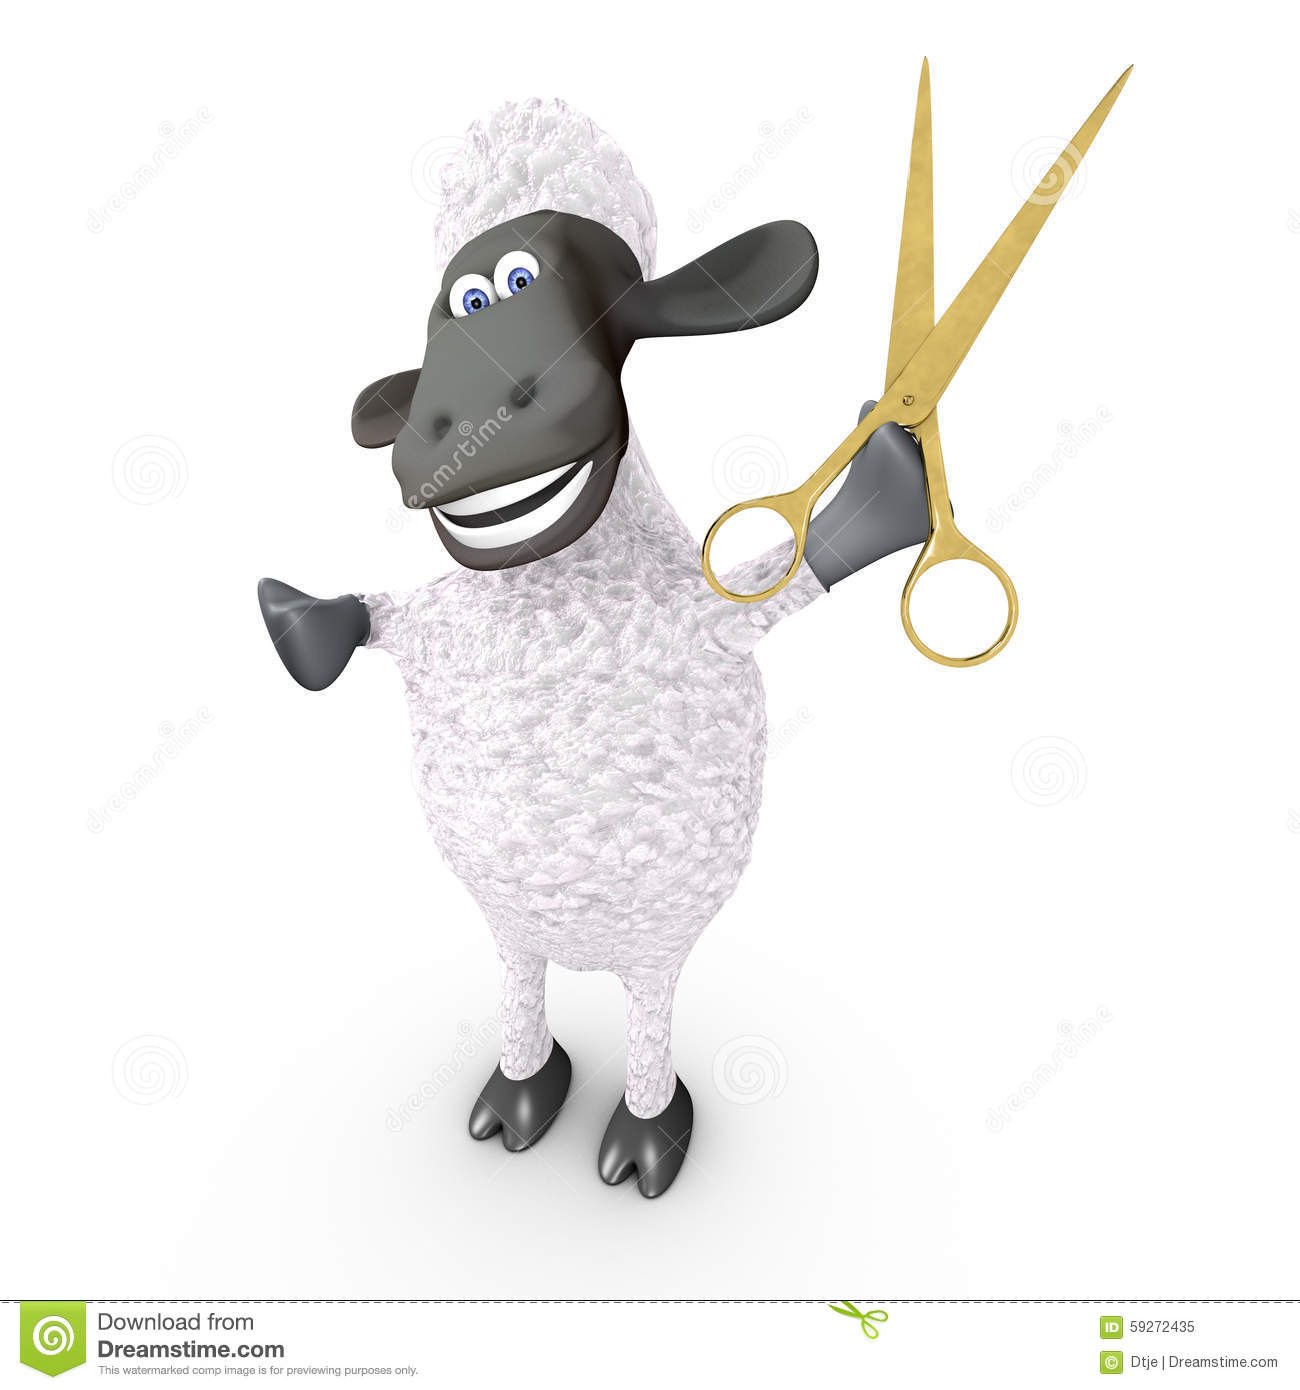 how to cut up a sheep